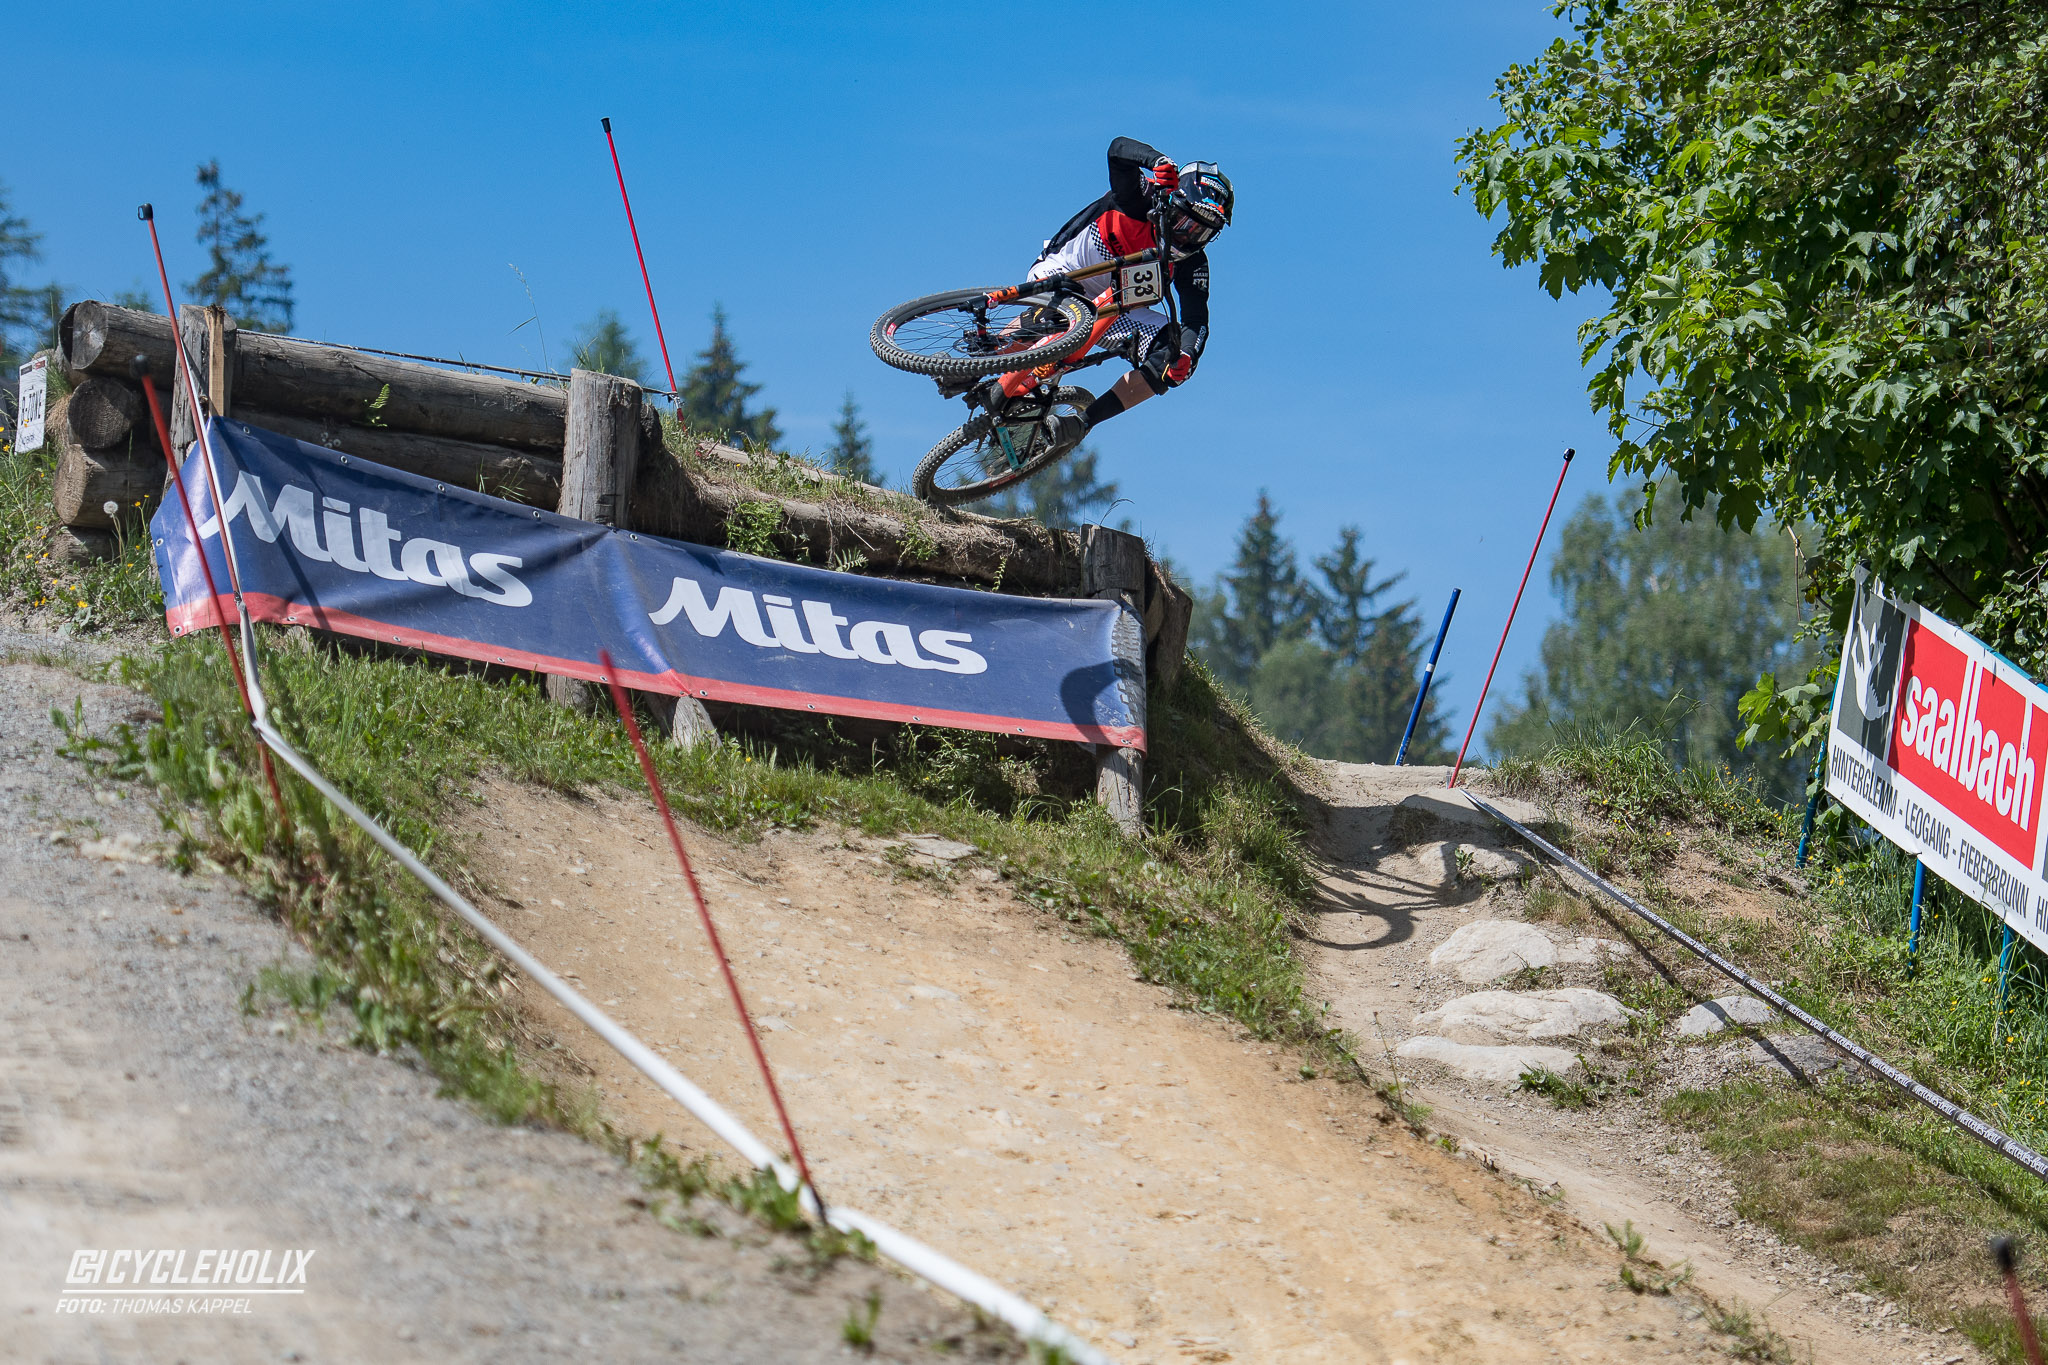 2019 Downhill Worldcup Leogang Finale Action A 1 Cycleholix